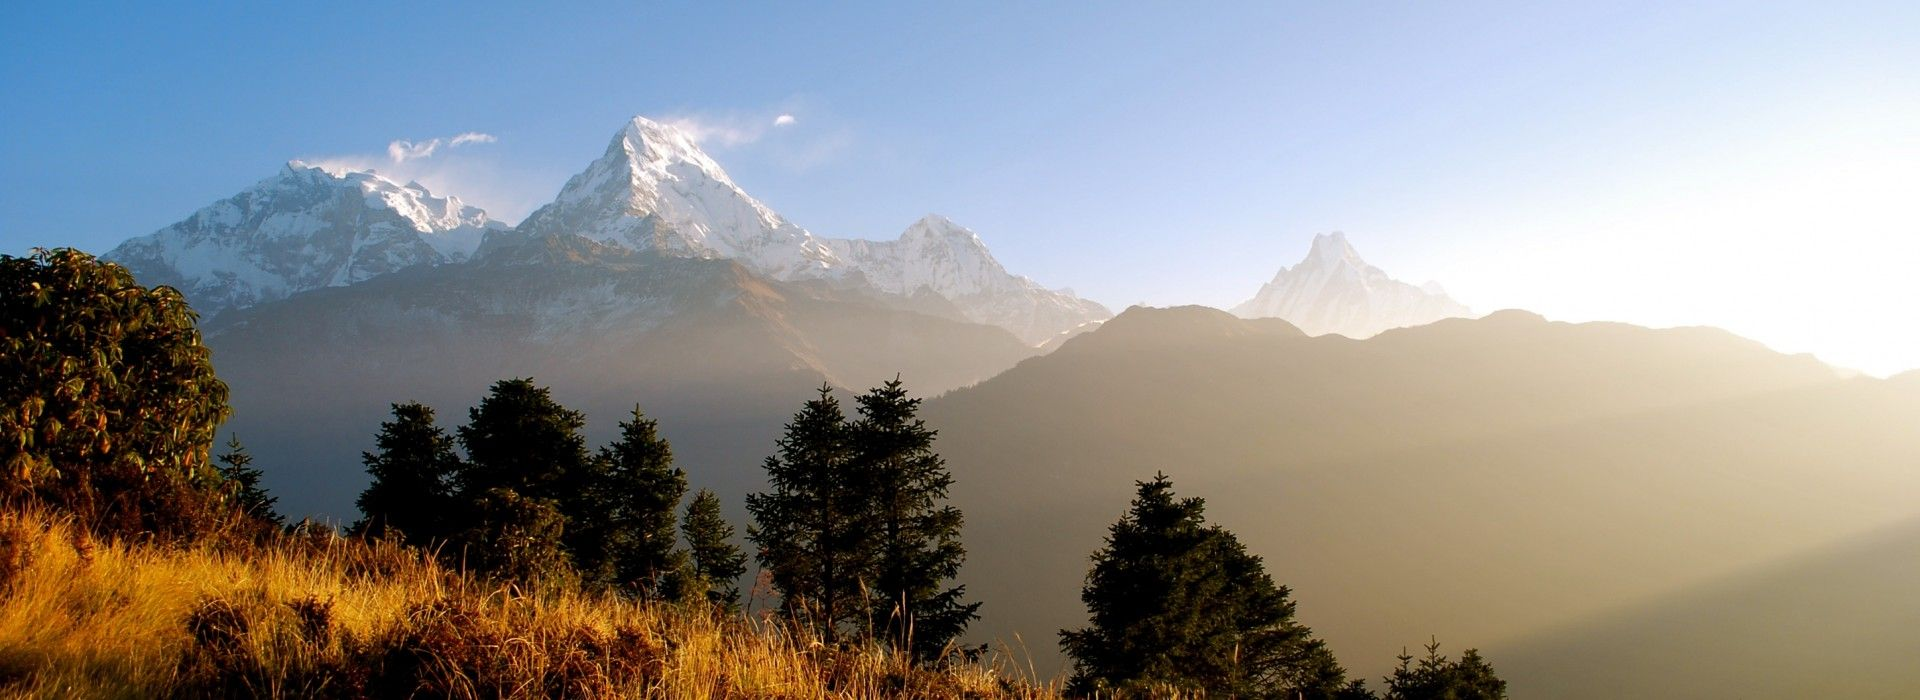 Mountains Tours in Annapurna Region